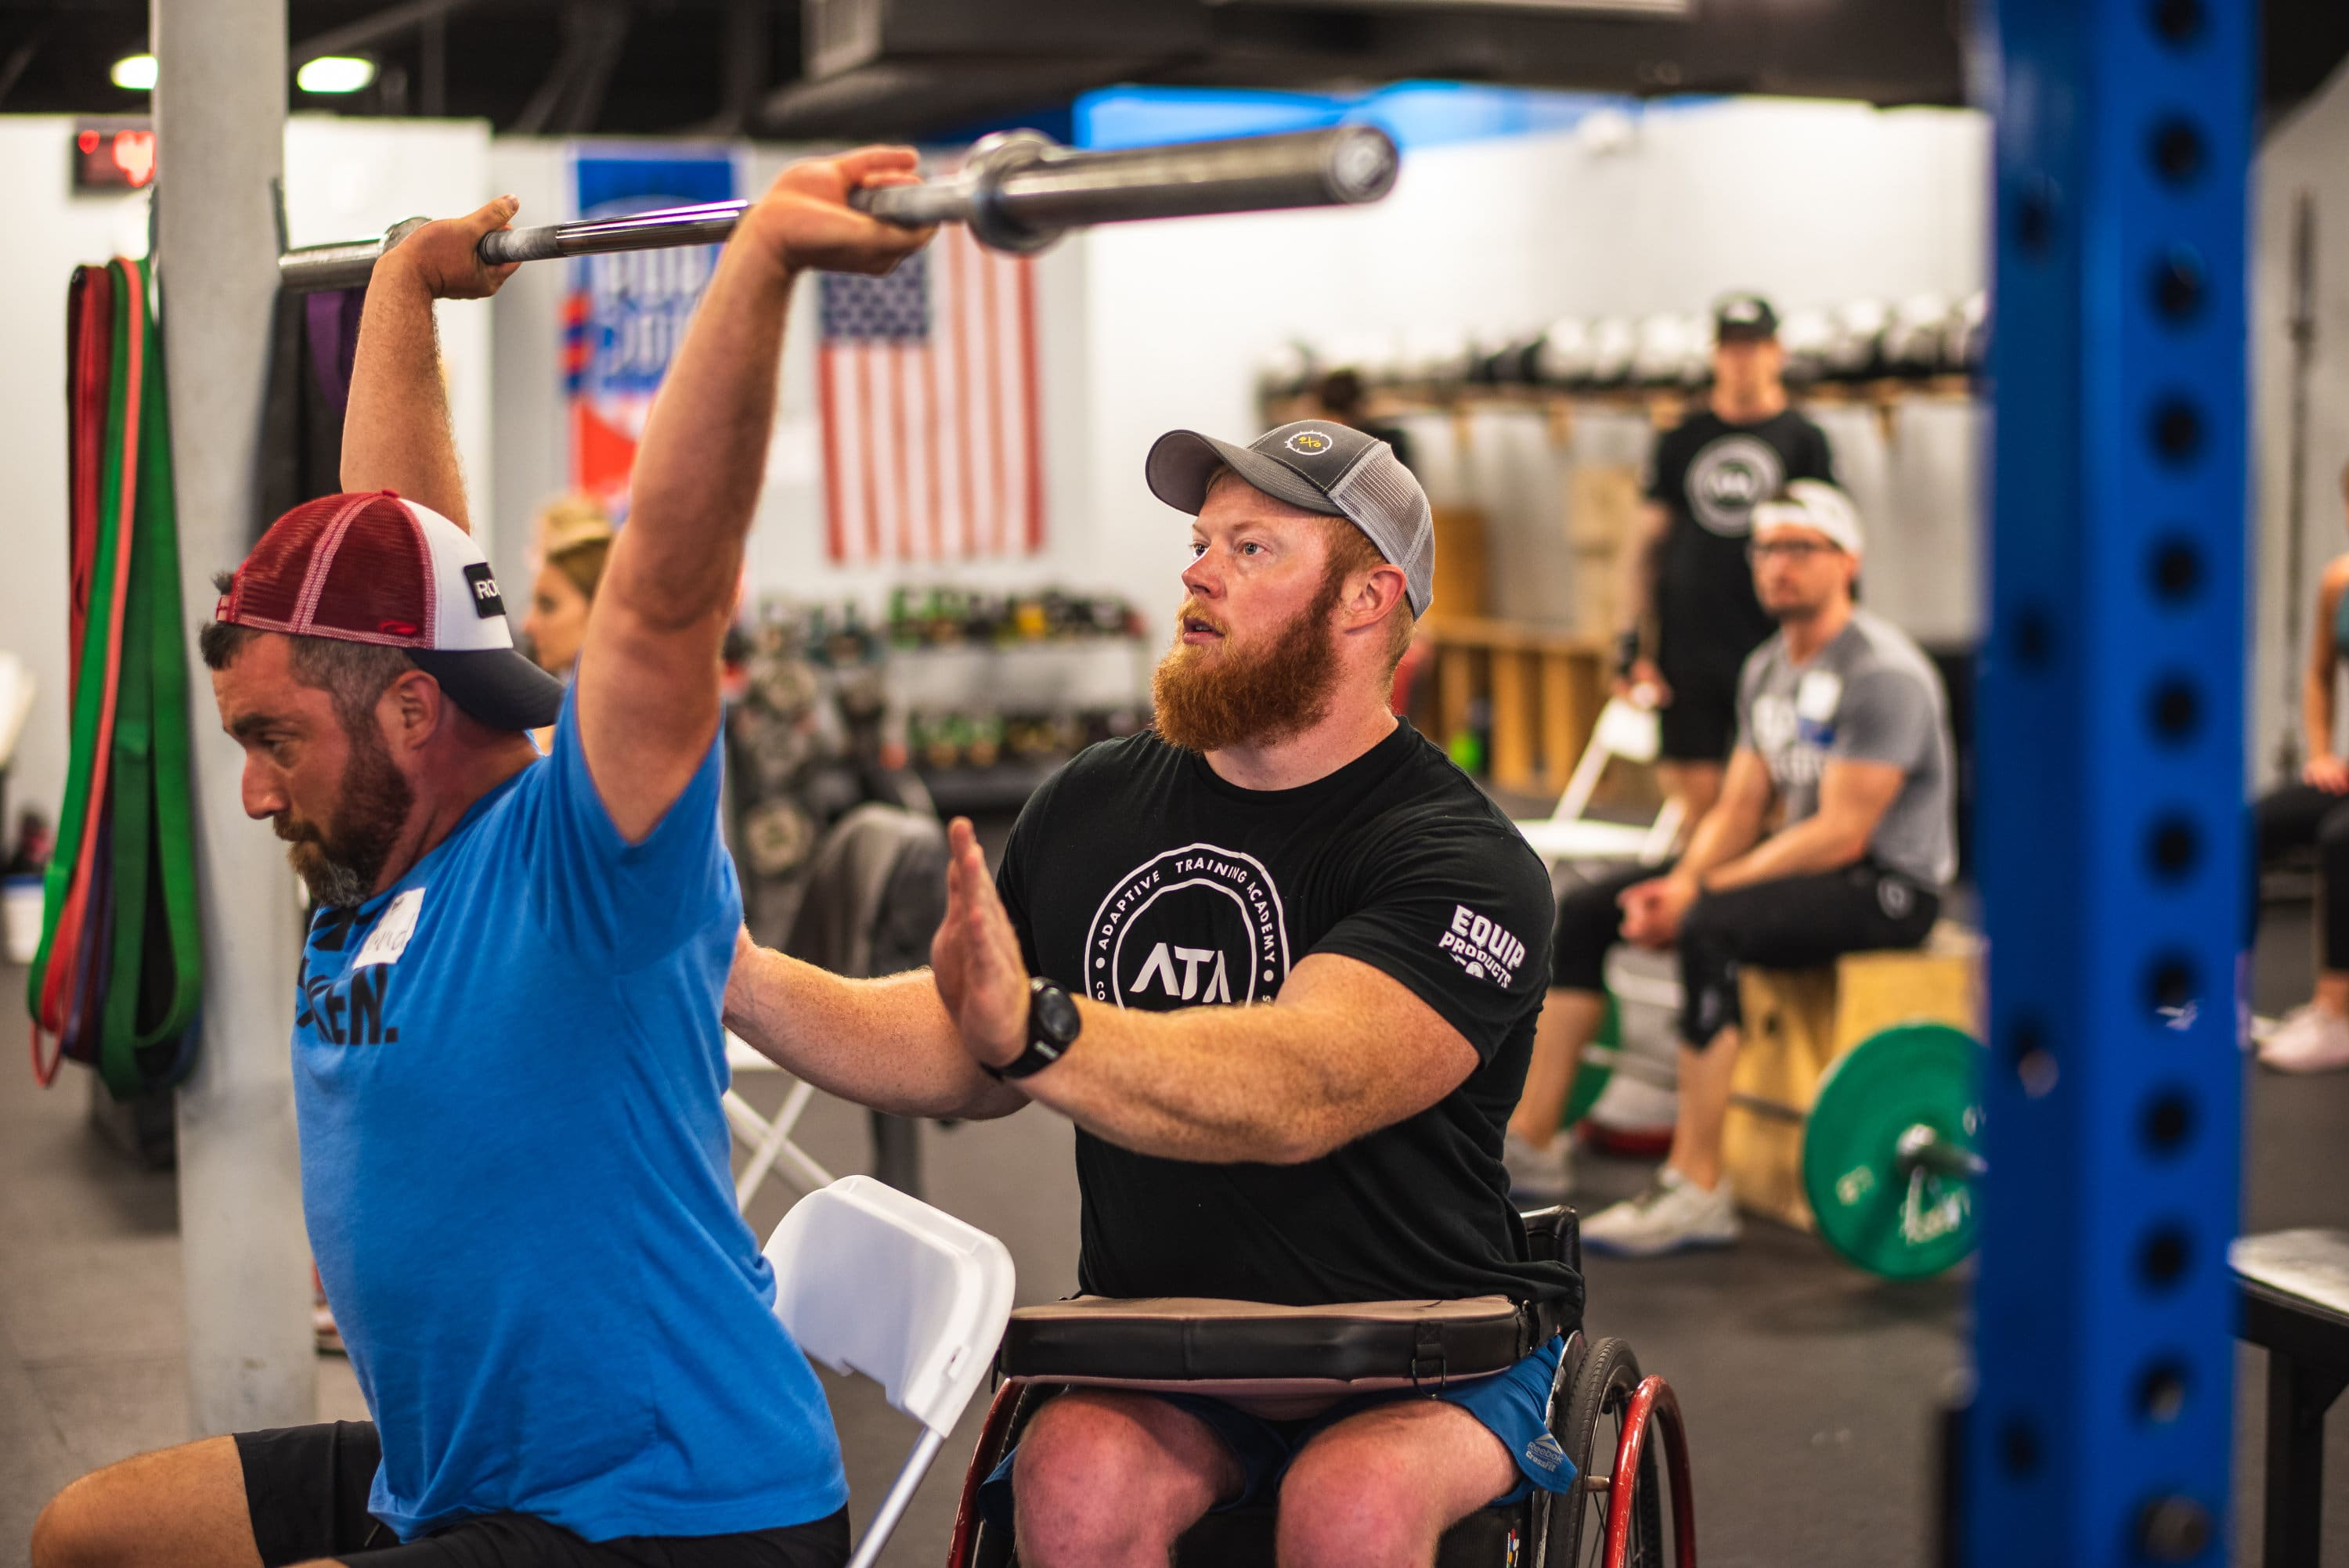 Adaptive coach Kevin Ogar trains abled-bodied and adaptive athletes.